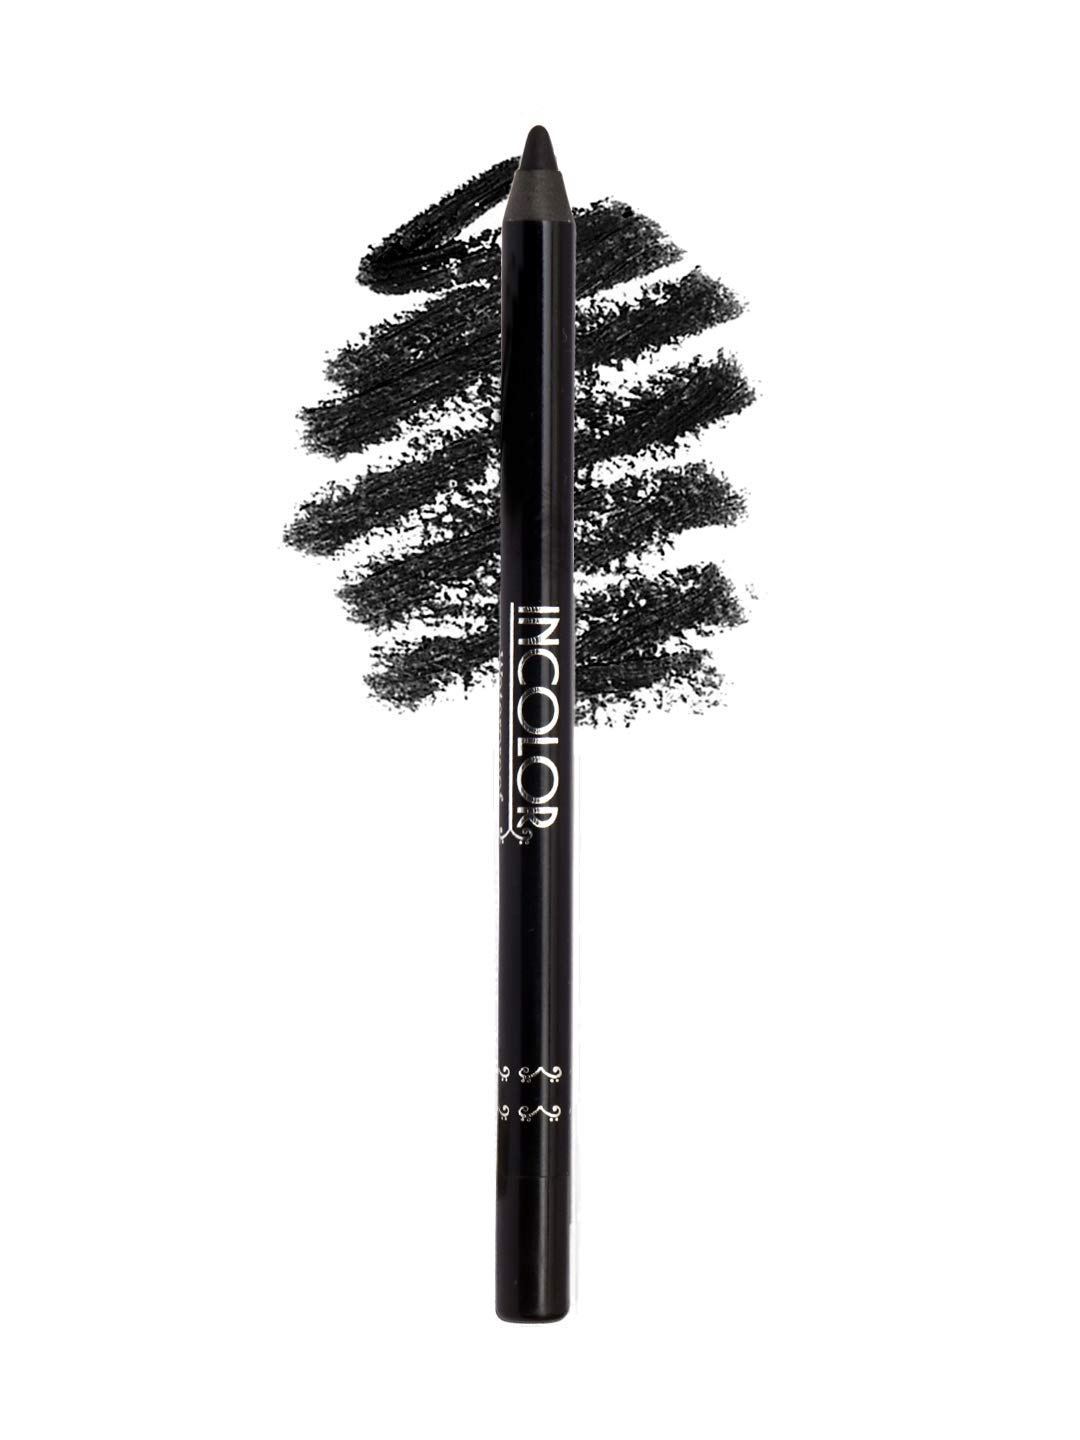 Buy Incolor Waterproof Duarble And Smudge Proof Long Lasting Kohl Kajal Eye Pencil For Women Matte Black Color 1 2 Gram Online At Low Prices In India Amazon In